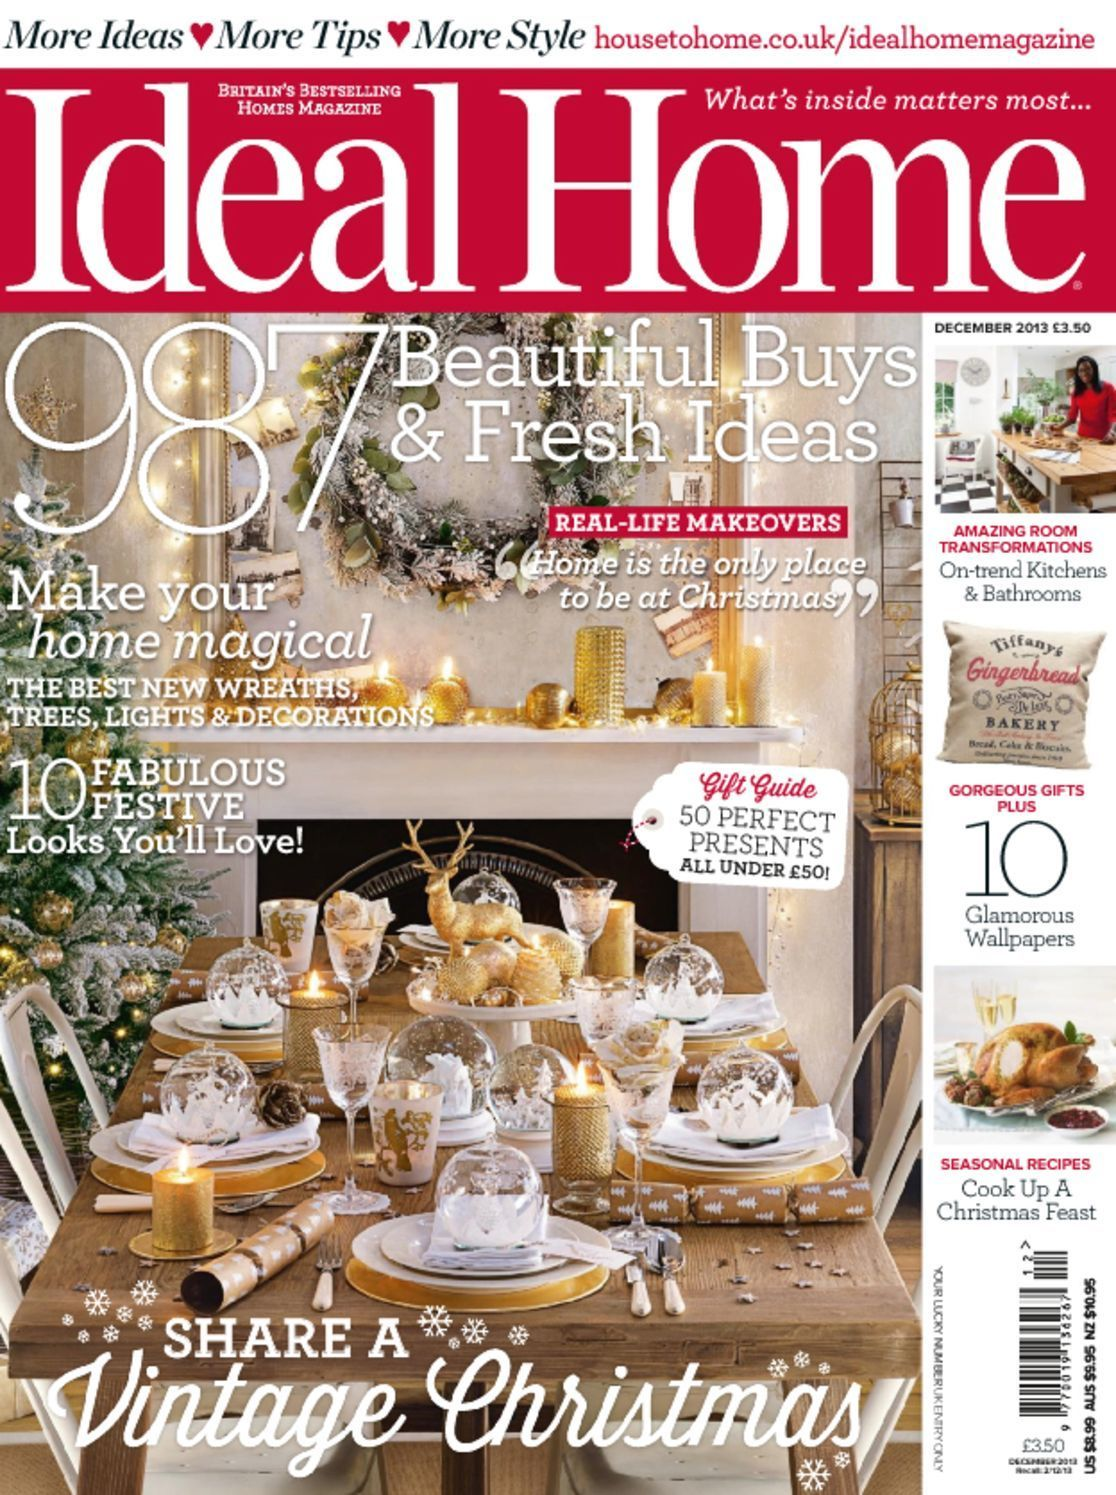 Download this magazine for free, with a Havering Library